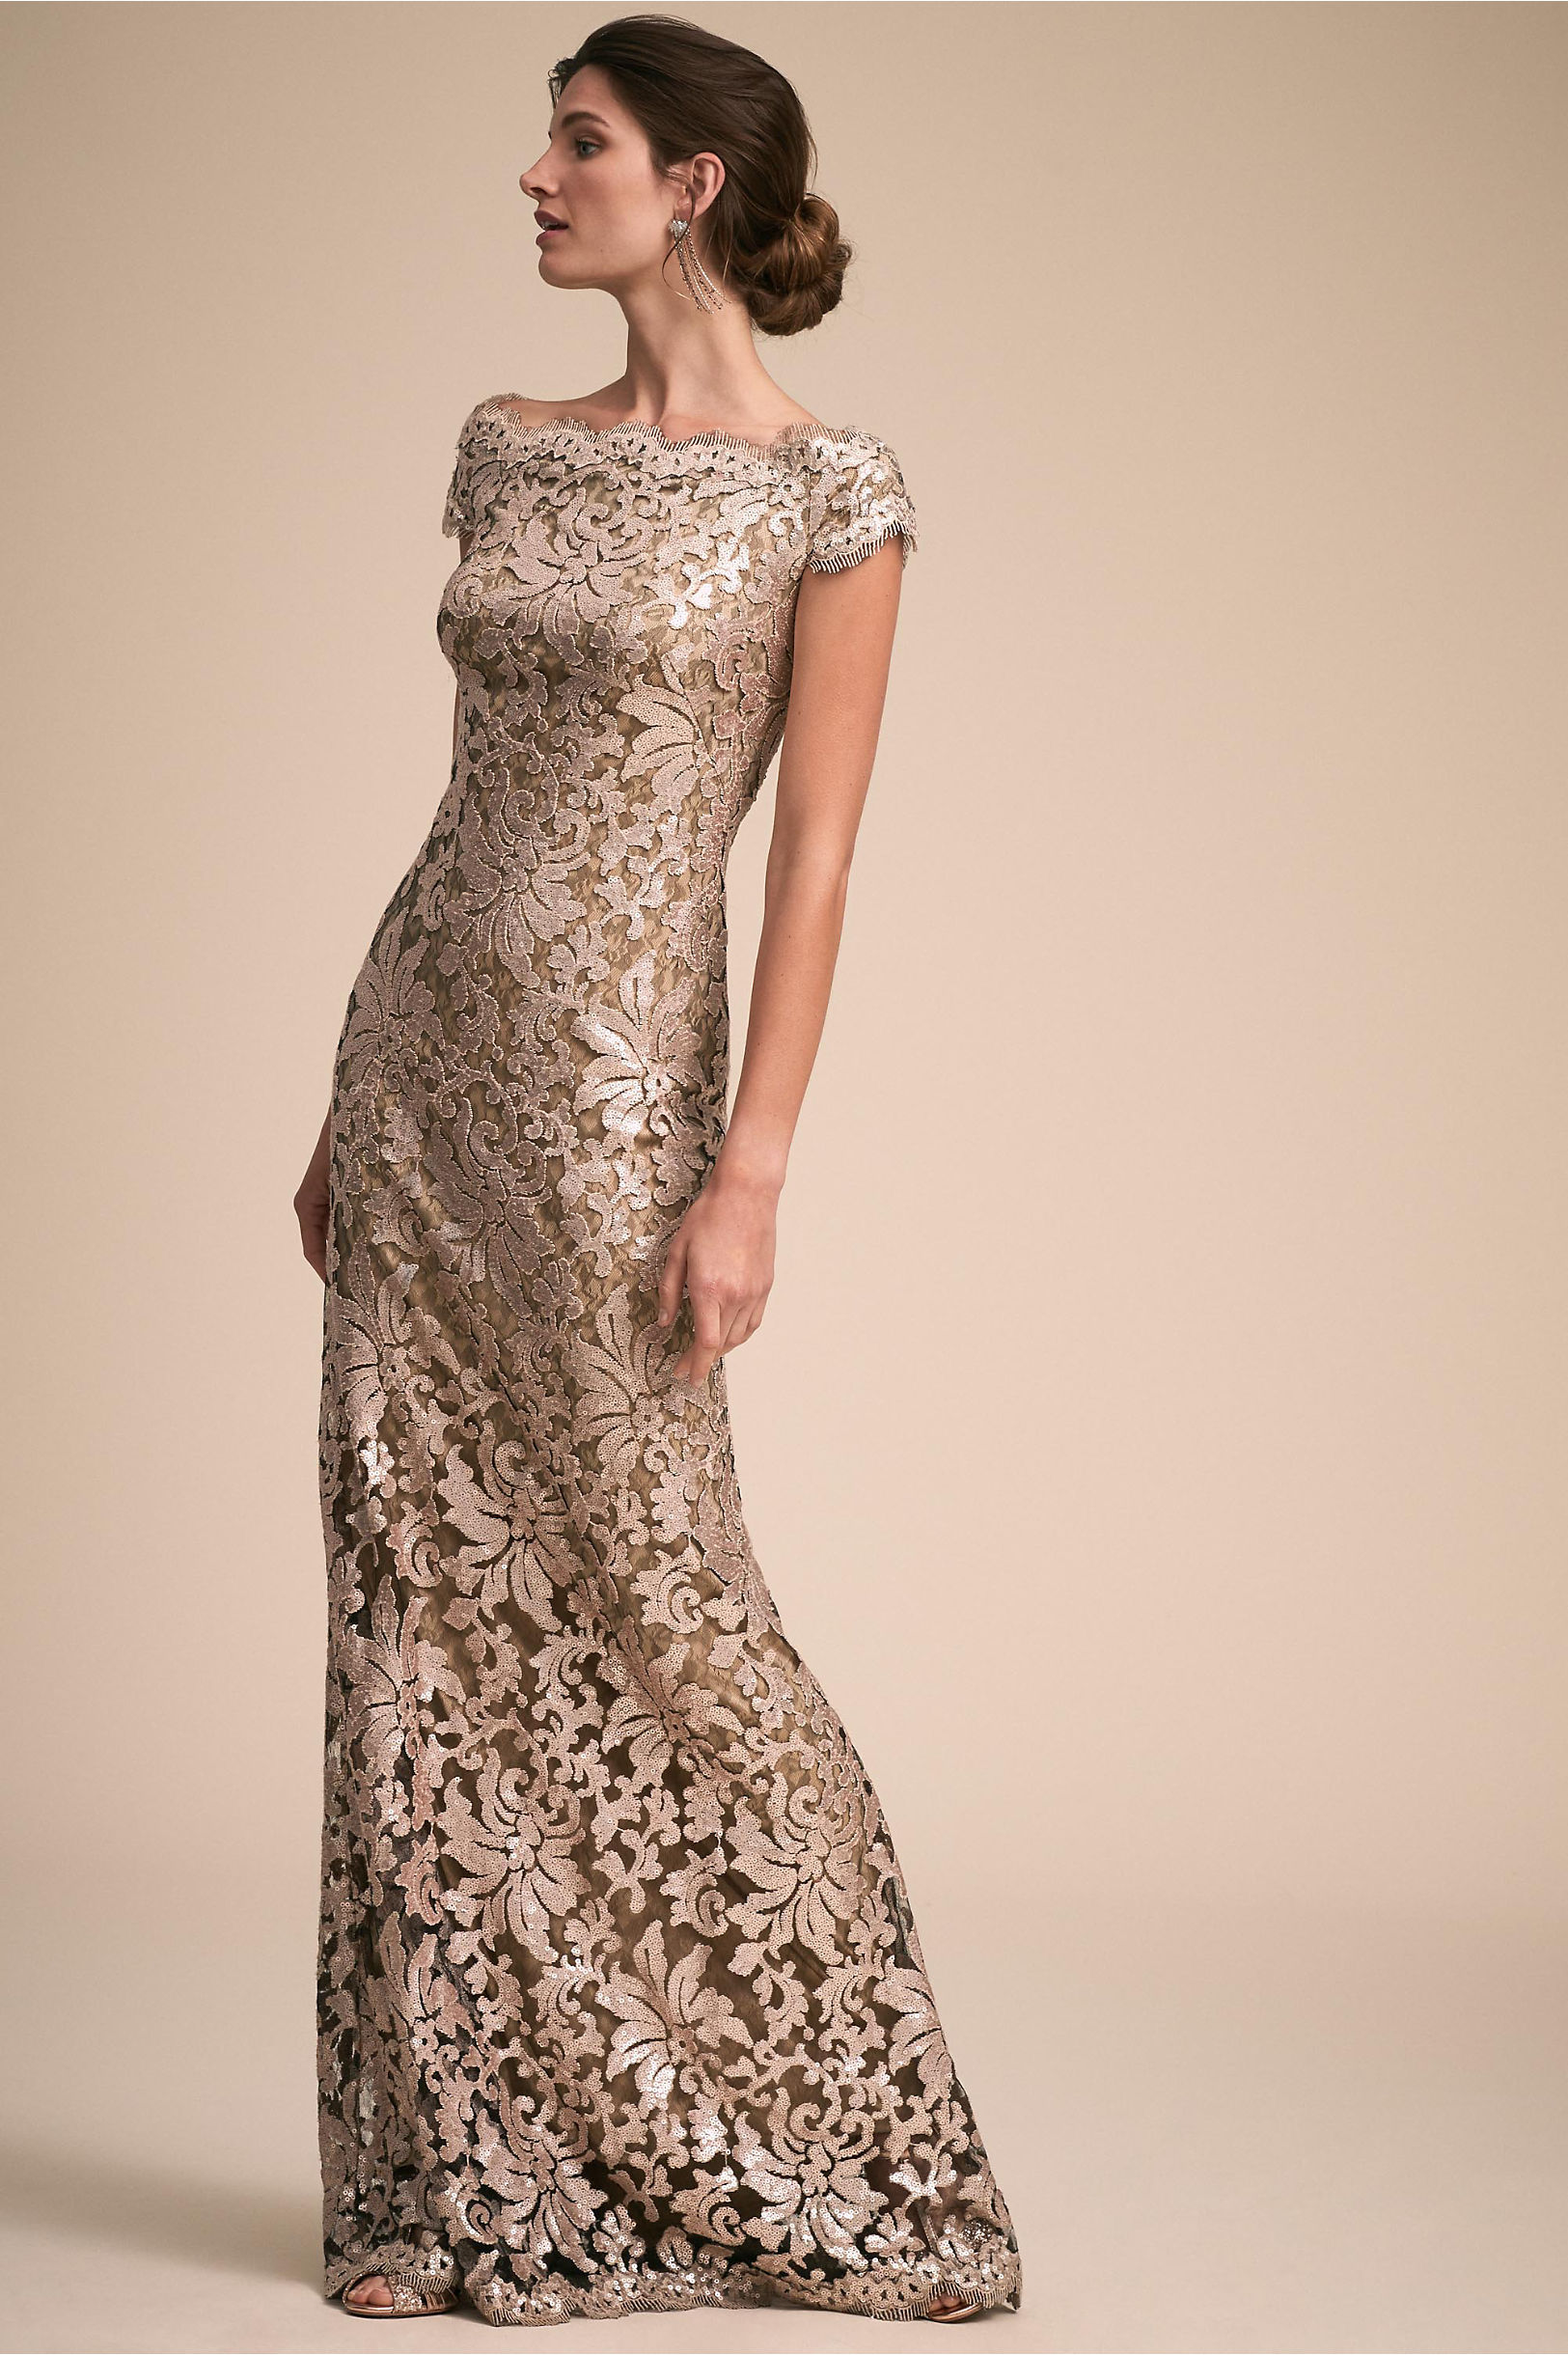 10 Sparkly Mother Of The Bride Dresses That Are Totally Wow